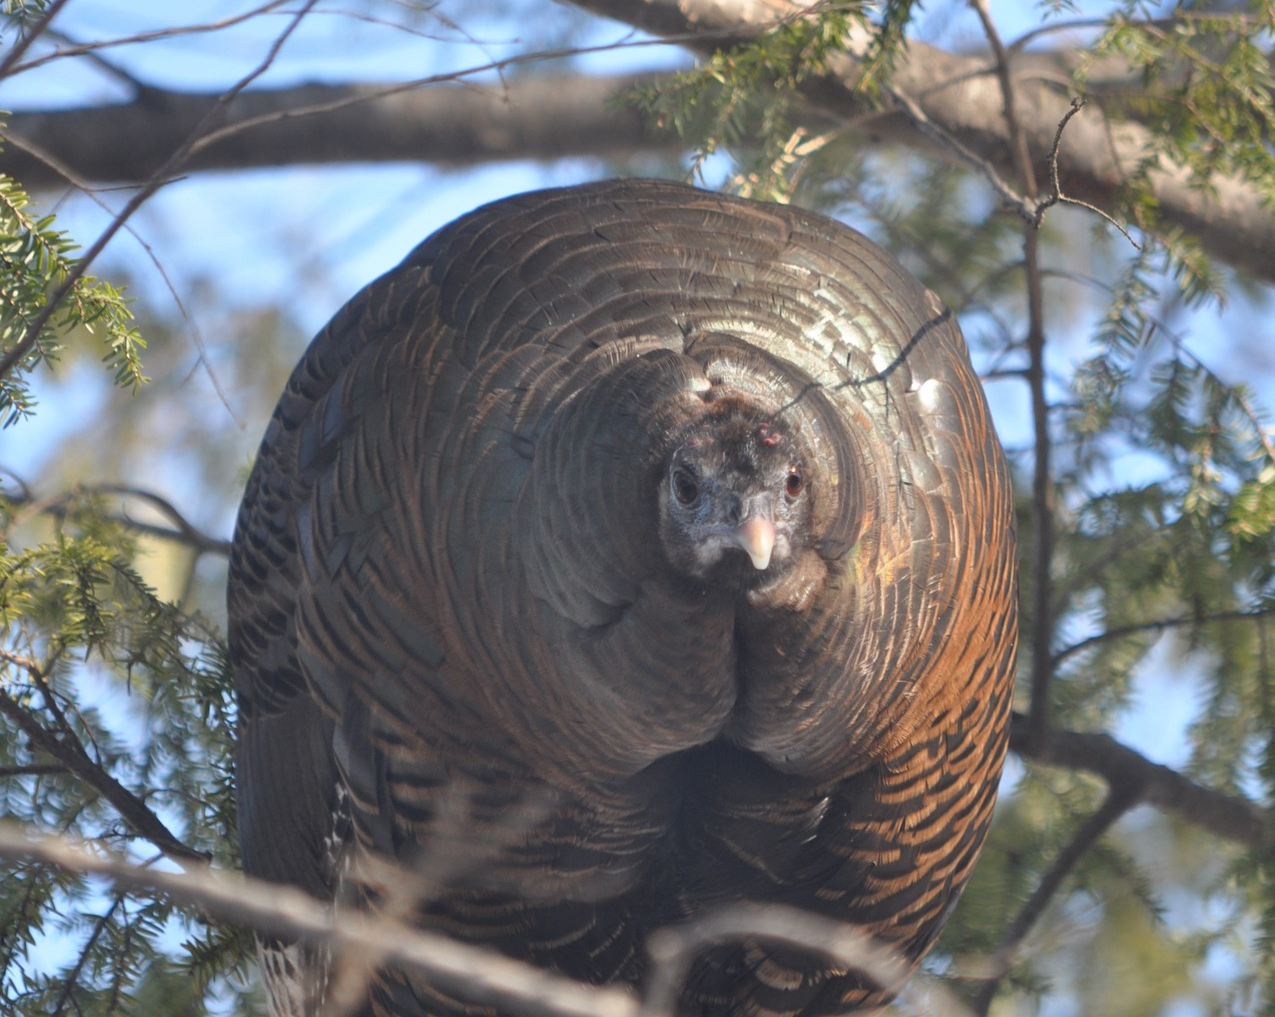 Turkey in a Hemlock Tree - My Review of Atheos